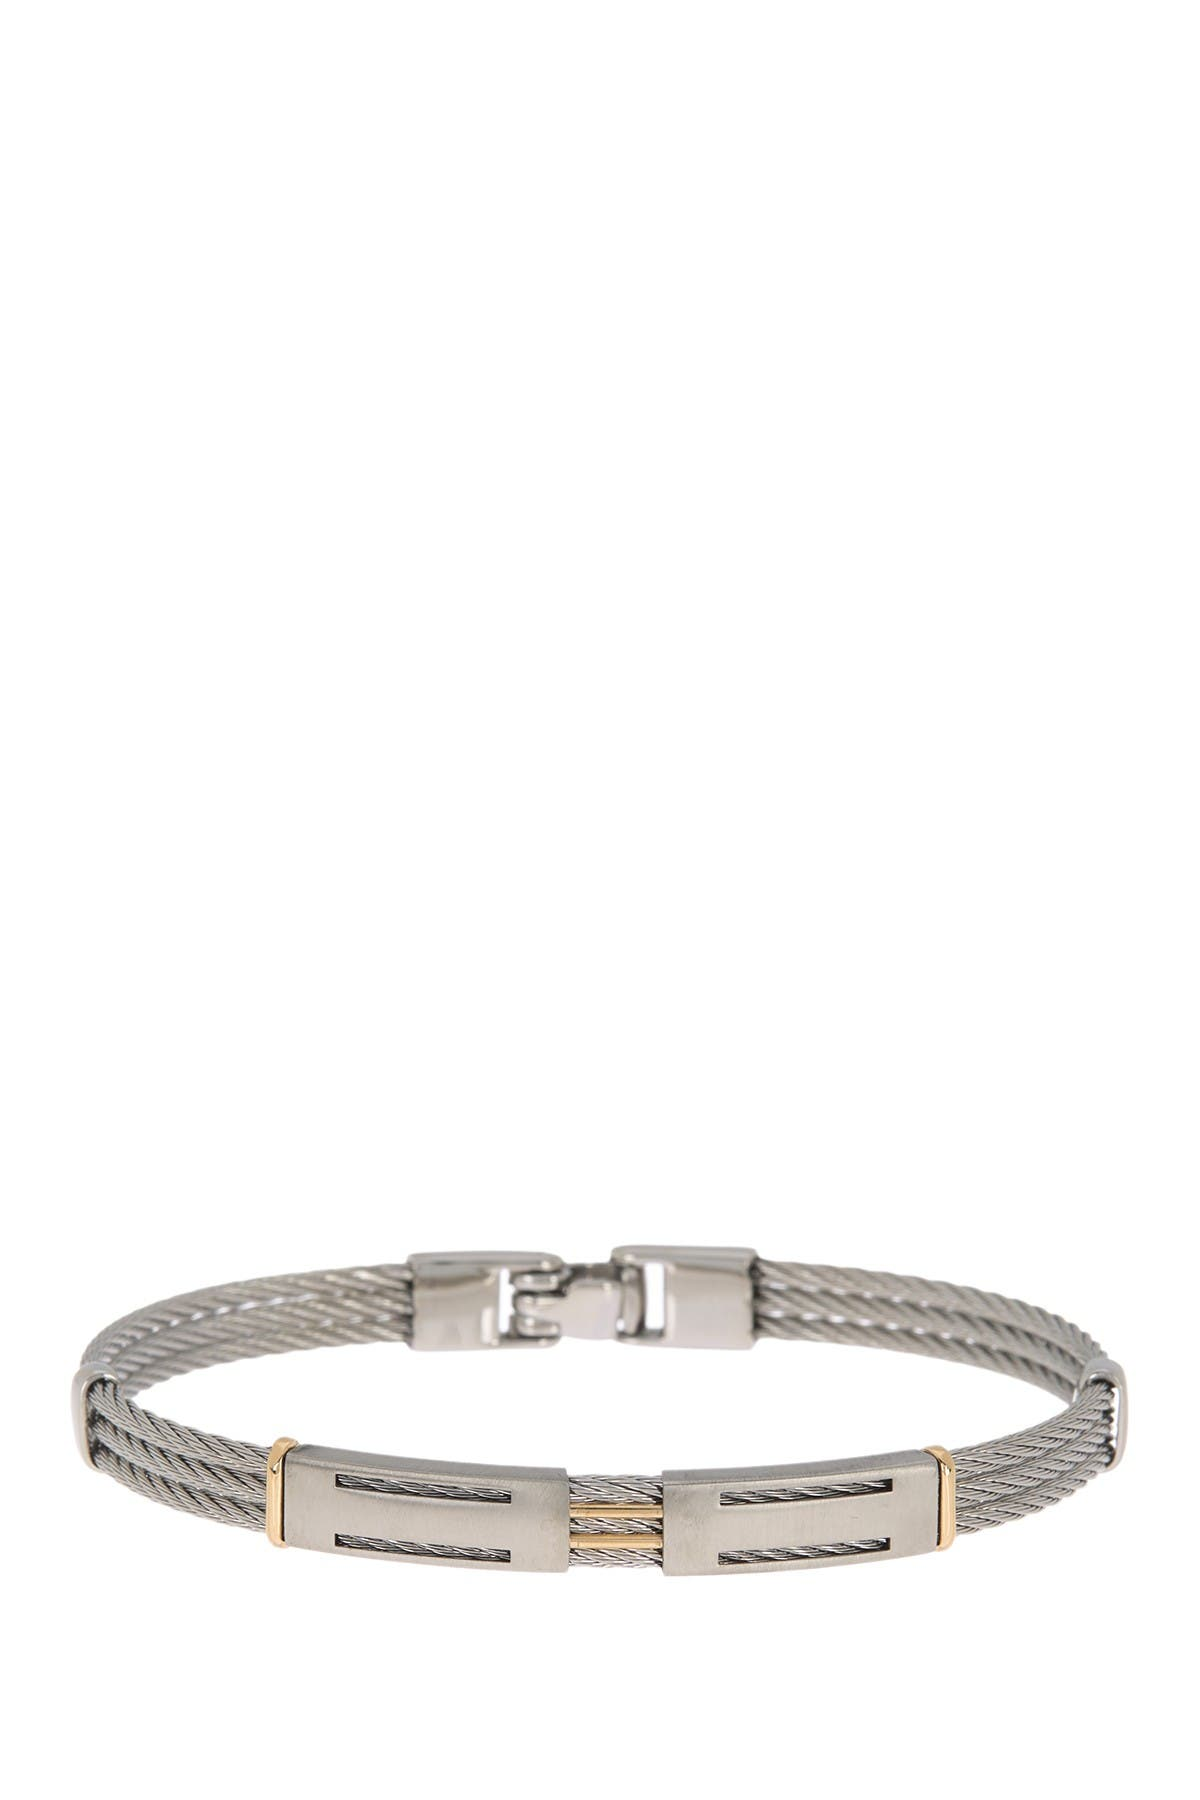 Image of ALOR Two-Tone Cable Bracelet